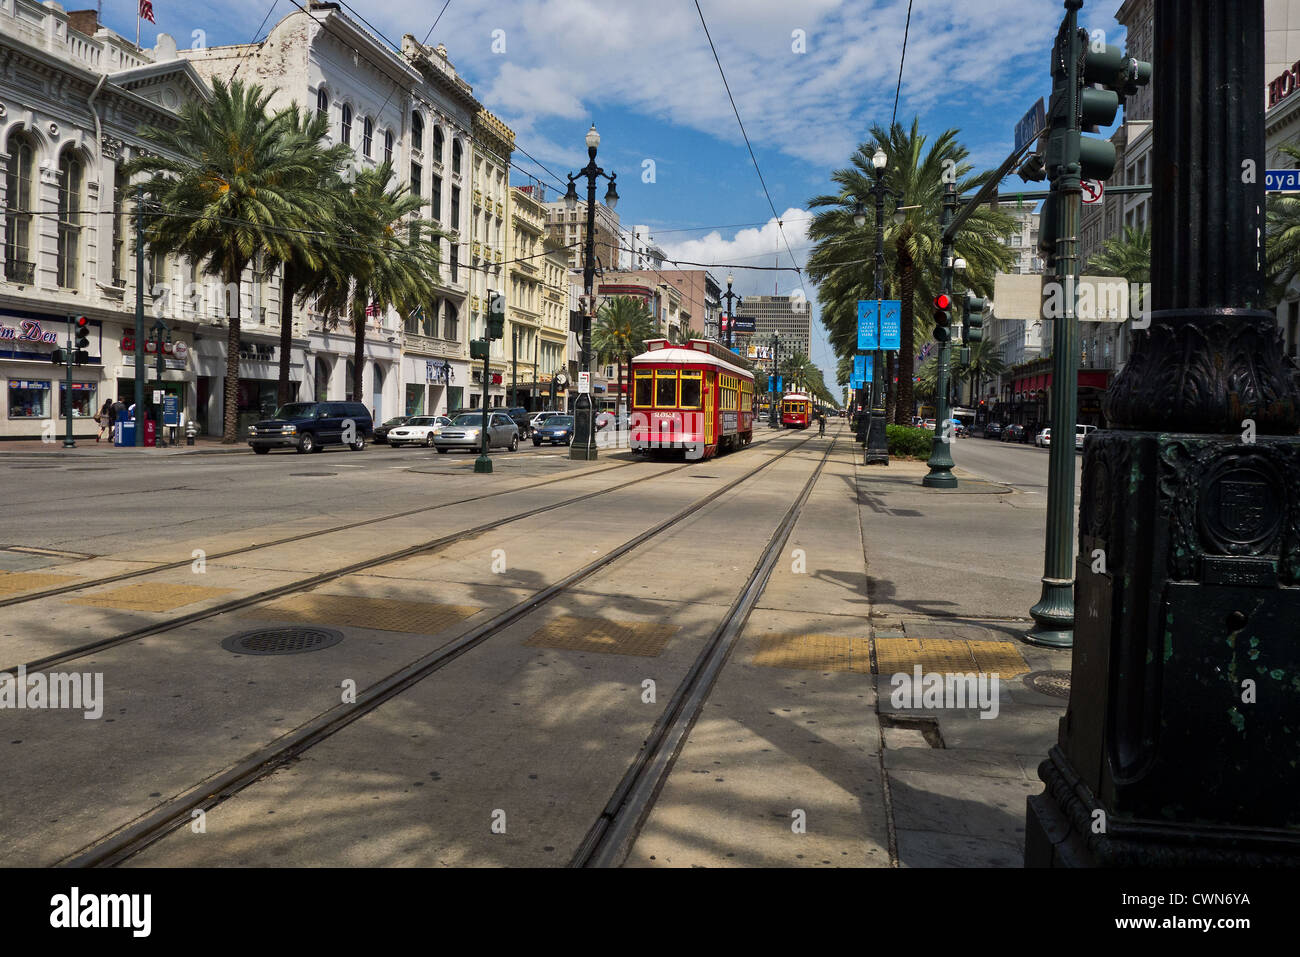 A view of Canal Street in New Orleans looking uptown, showing streetcars, general traffic, palm trees, shops and - Stock Image